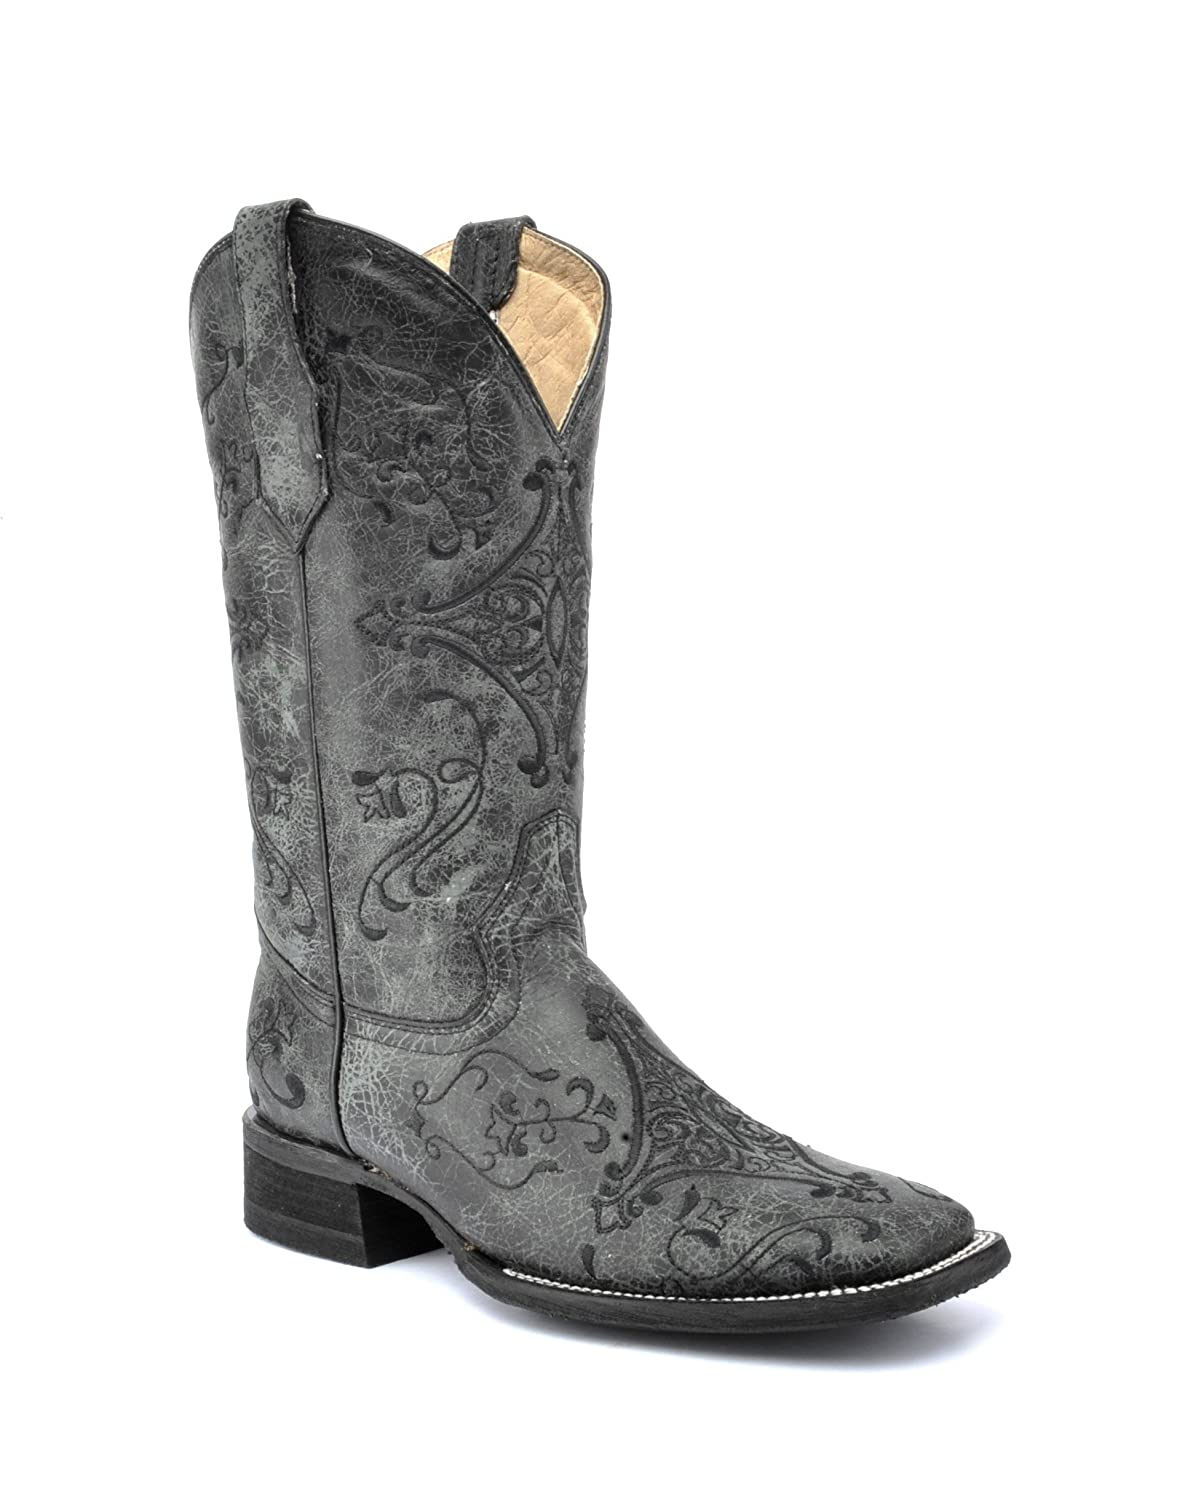 Corral Circle G Boot Women's 12-inch Distressed Leather Embroidery Square Toe Black/Grey Western Boot B06X9NY5ZN 8.5 B(M) US|Black